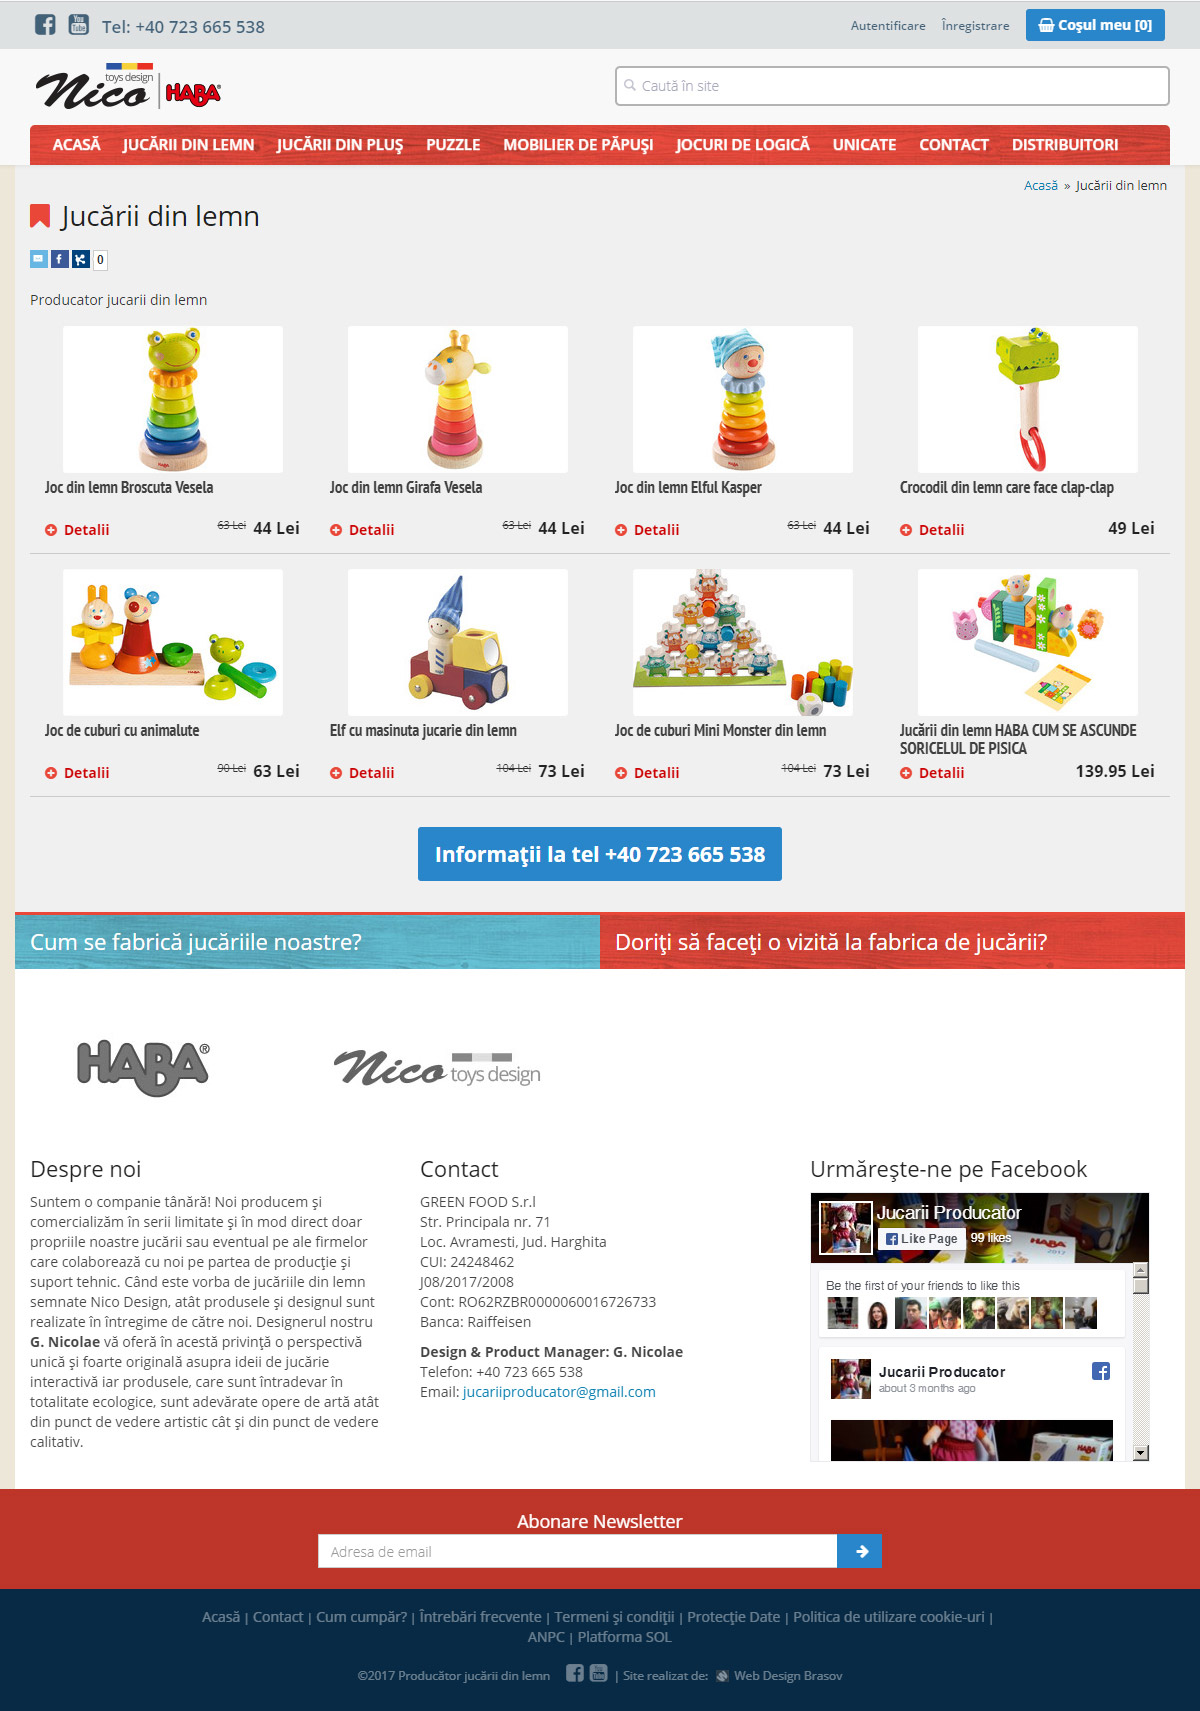 Wooden toys producer